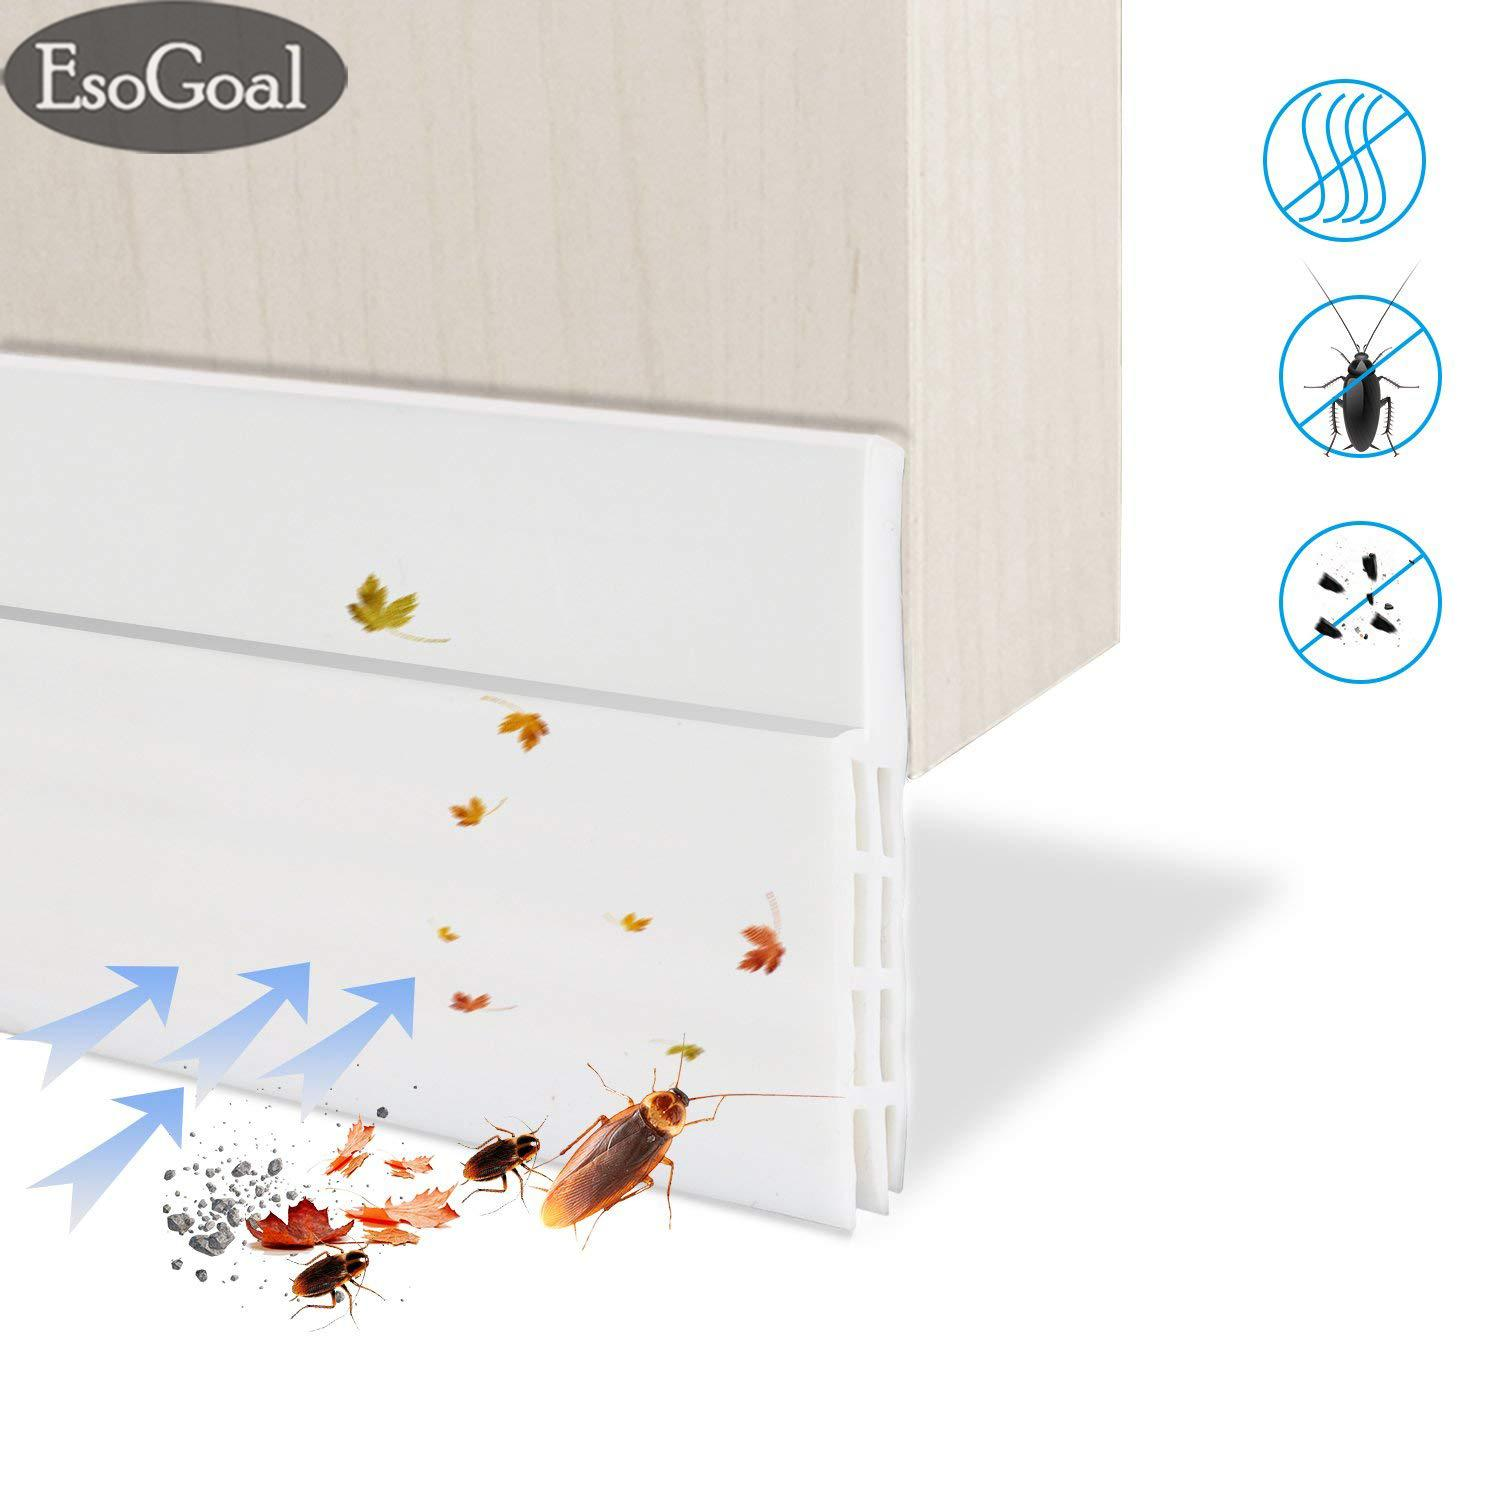 Esogoal Door Bottom Seal Strip Adhesive Under Door Silicone Sweep Weather Stripping Under Door Draft Stopper Rubber Strip Door Block Seal Noise Reduction Dustproof Weatherstrip By Esogoal